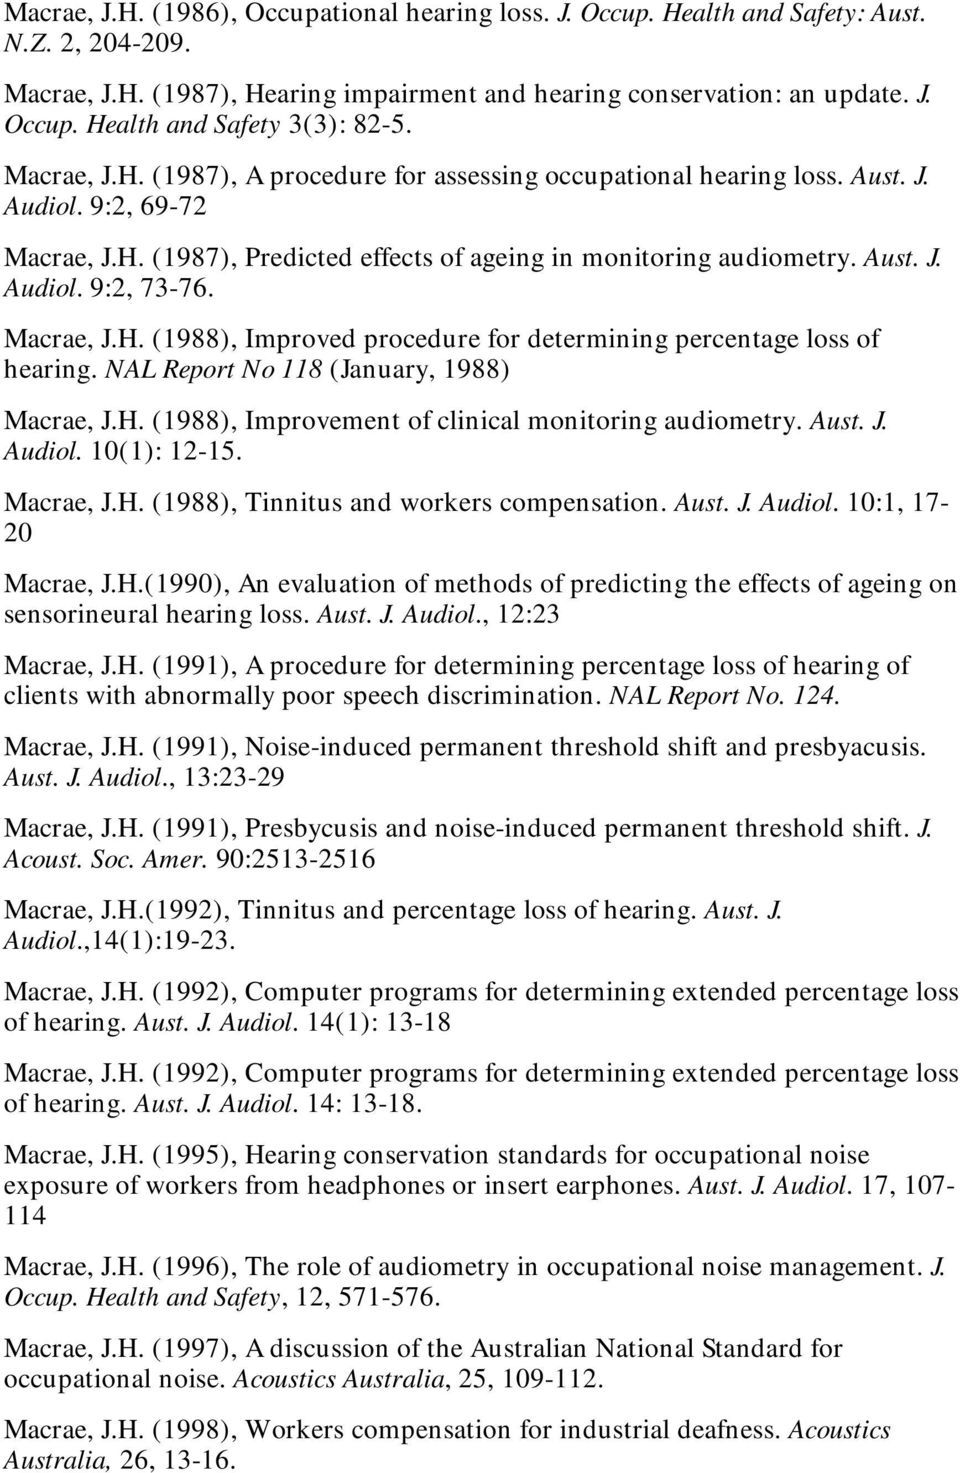 Macrae, J.H. (1988), Improved procedure for determining percentage loss of hearing. NAL Report No 118 (January, 1988) Macrae, J.H. (1988), Improvement of clinical monitoring audiometry. Aust. J. Audiol.